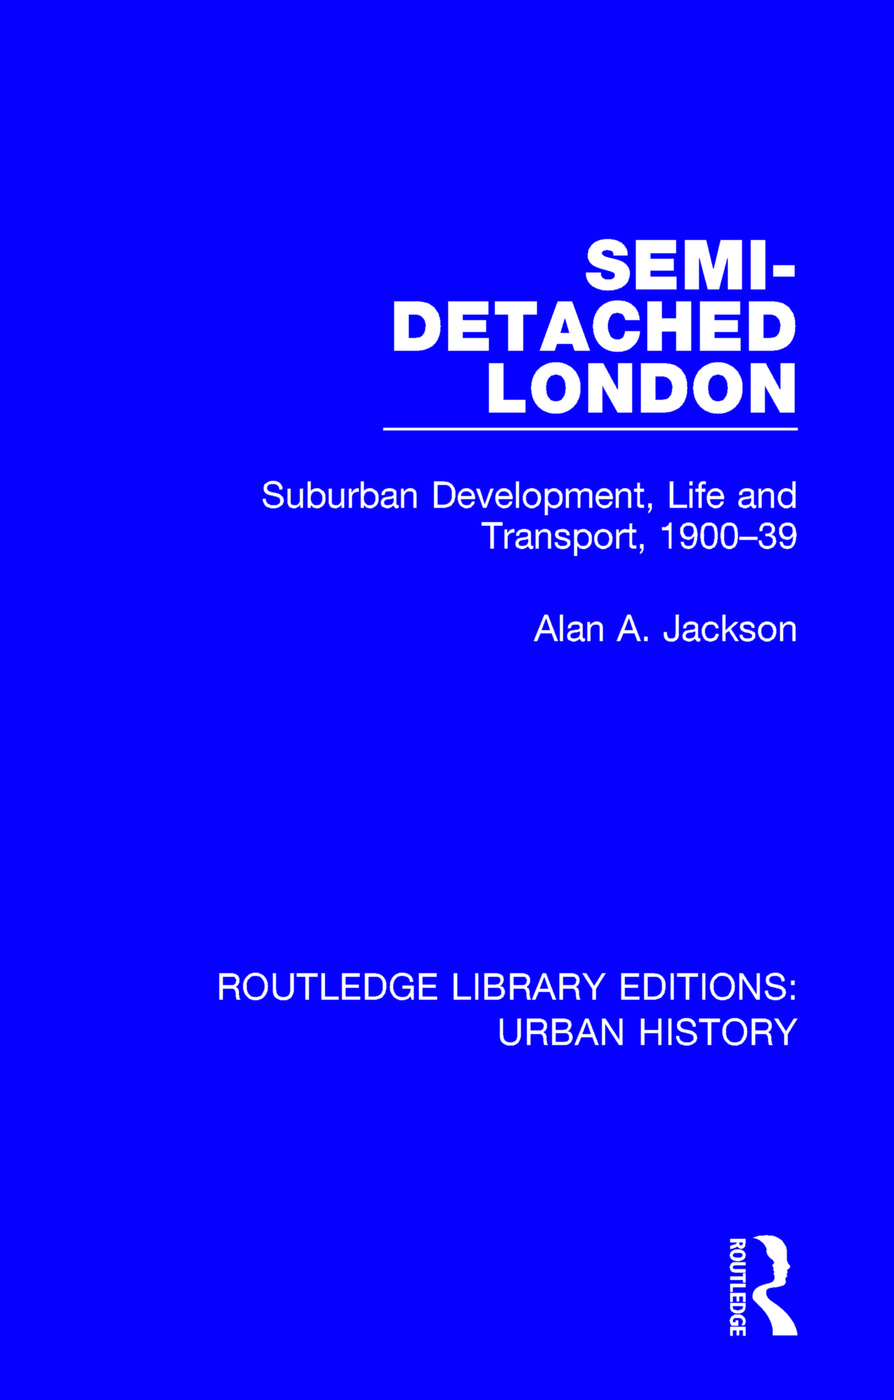 Semi-Detached London: Suburban Development, Life and Transport, 1900-39 book cover